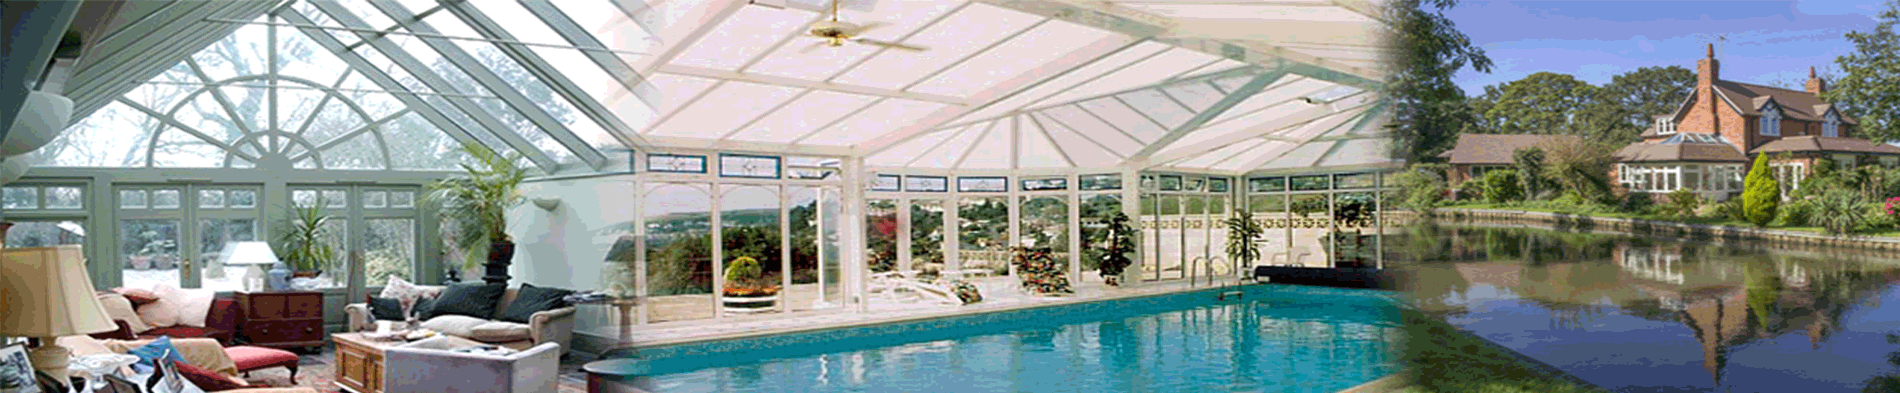 Conservatories high Wycom,be